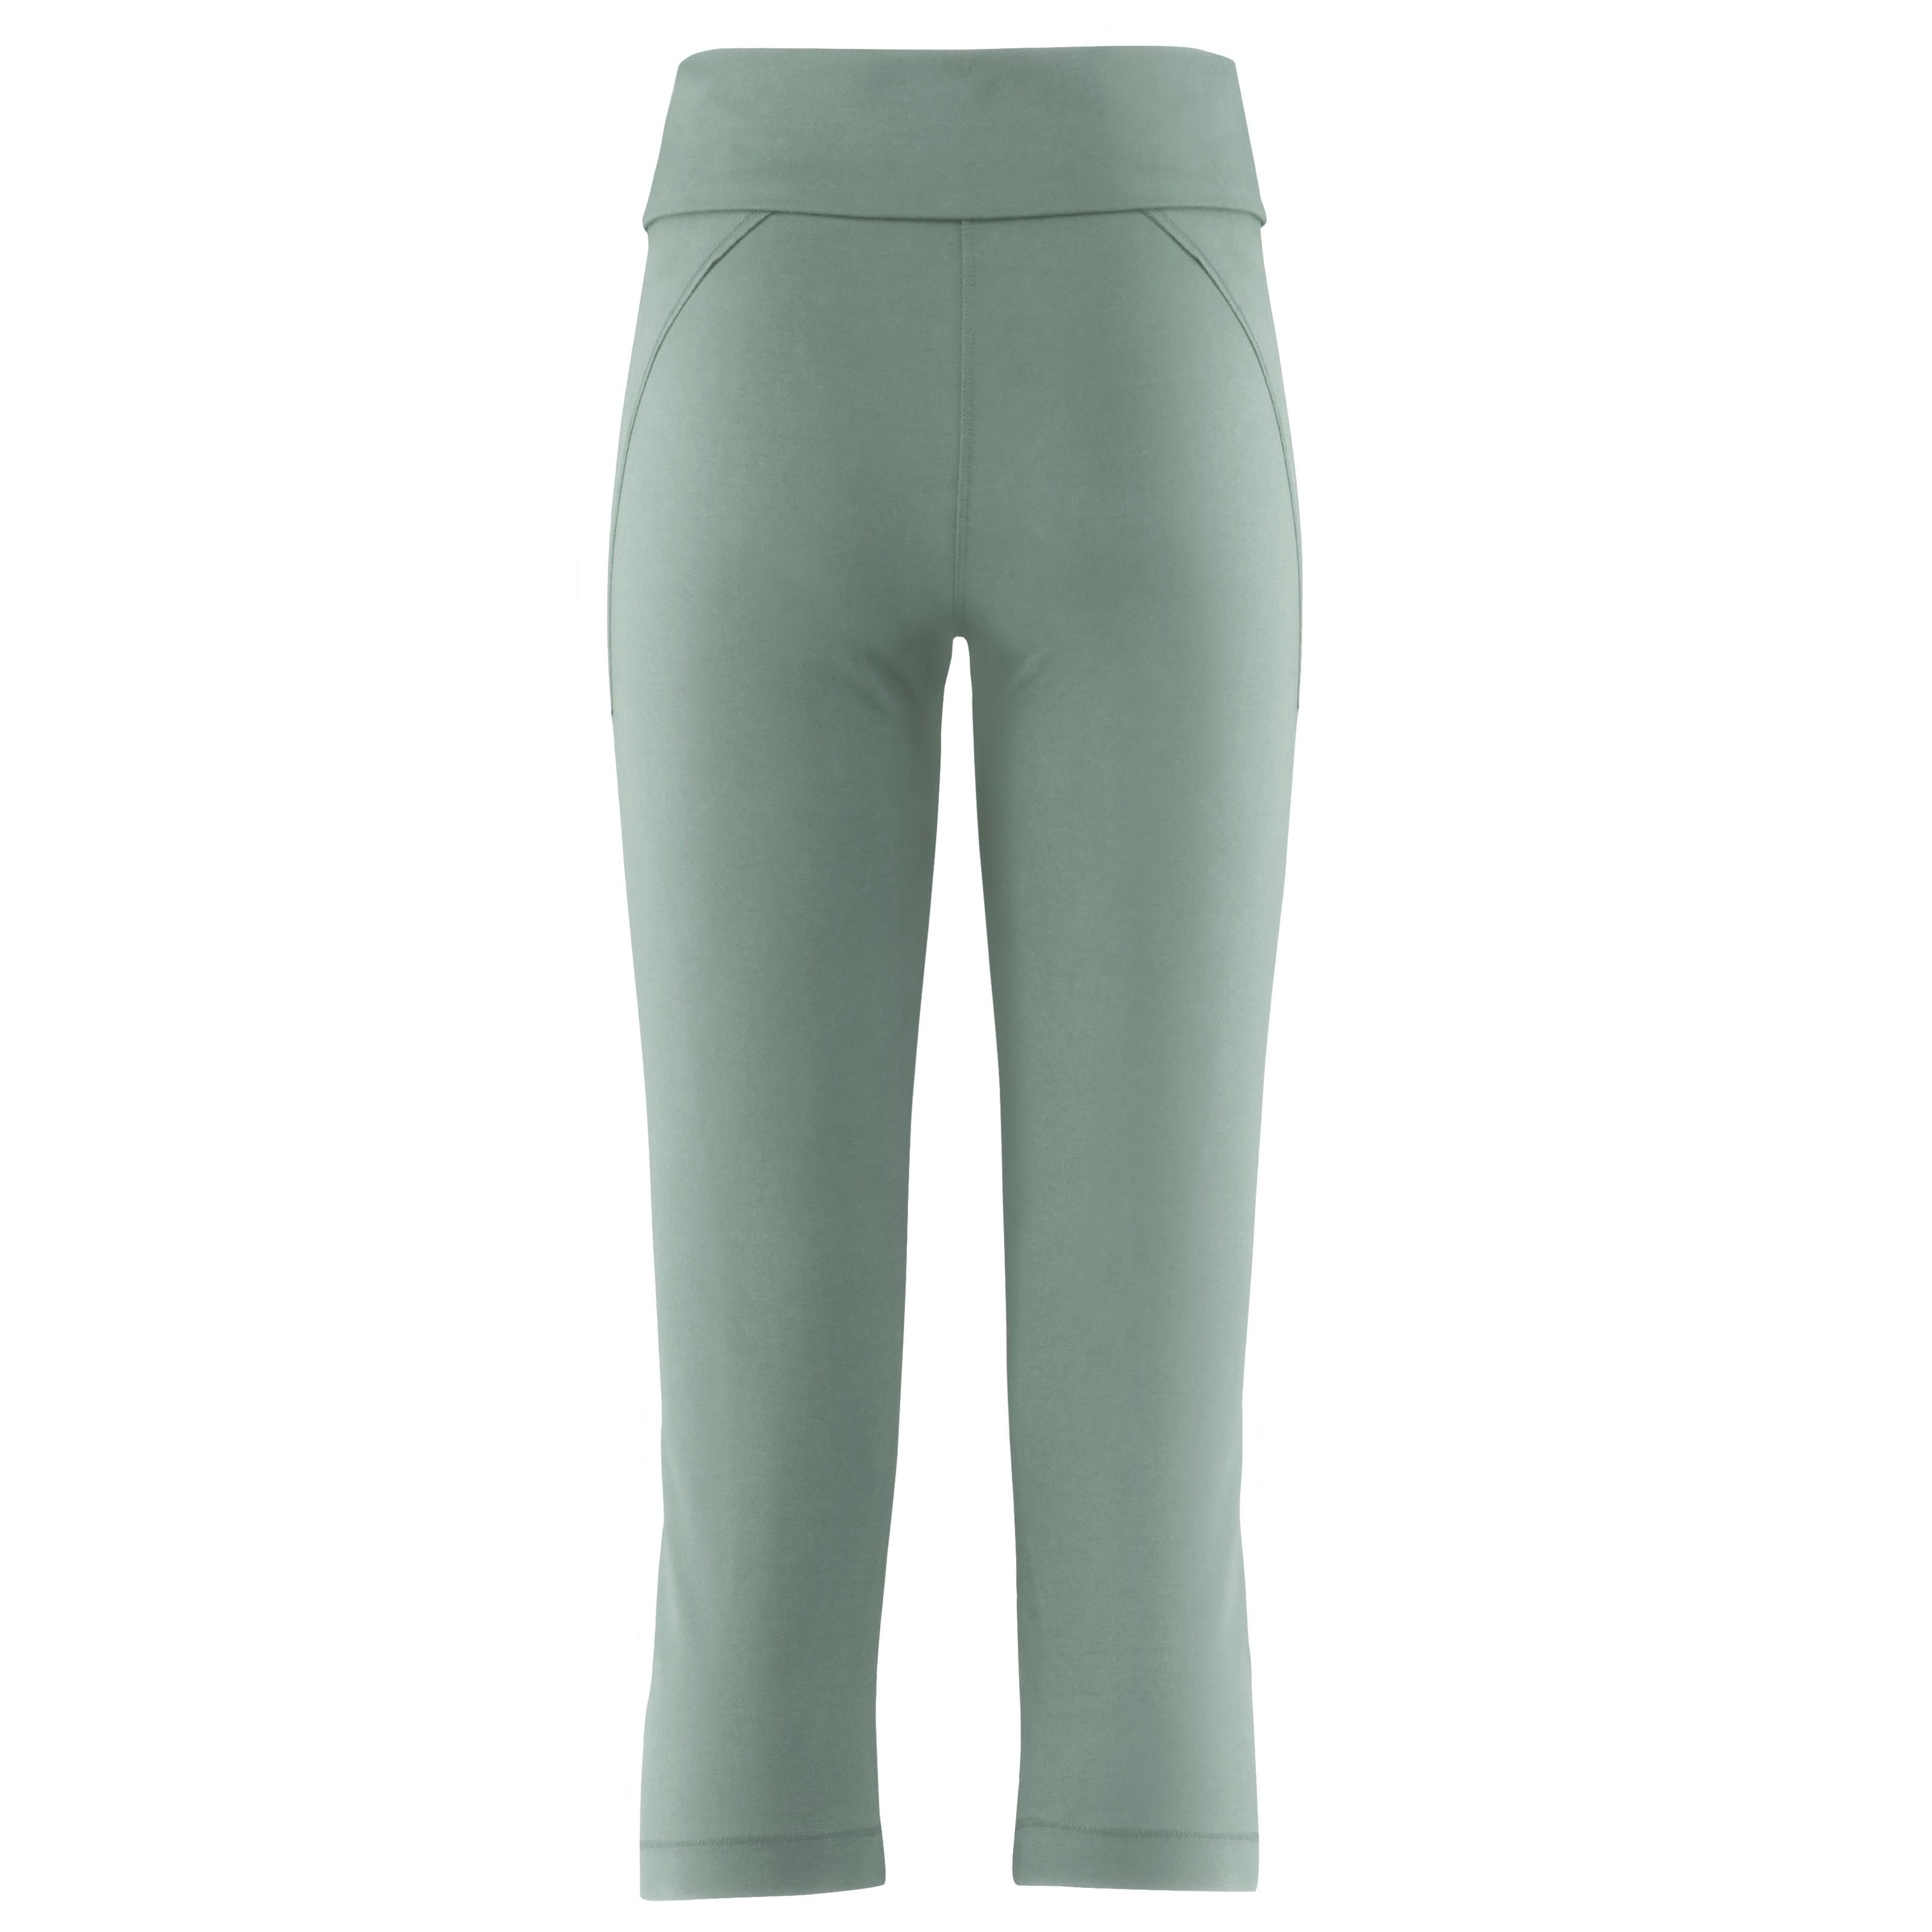 "Softe Yogahose ""Anastacia"", nightgreen - Capri Leggings mit Umschlagbund - PS - Kamah Yoga and Style"